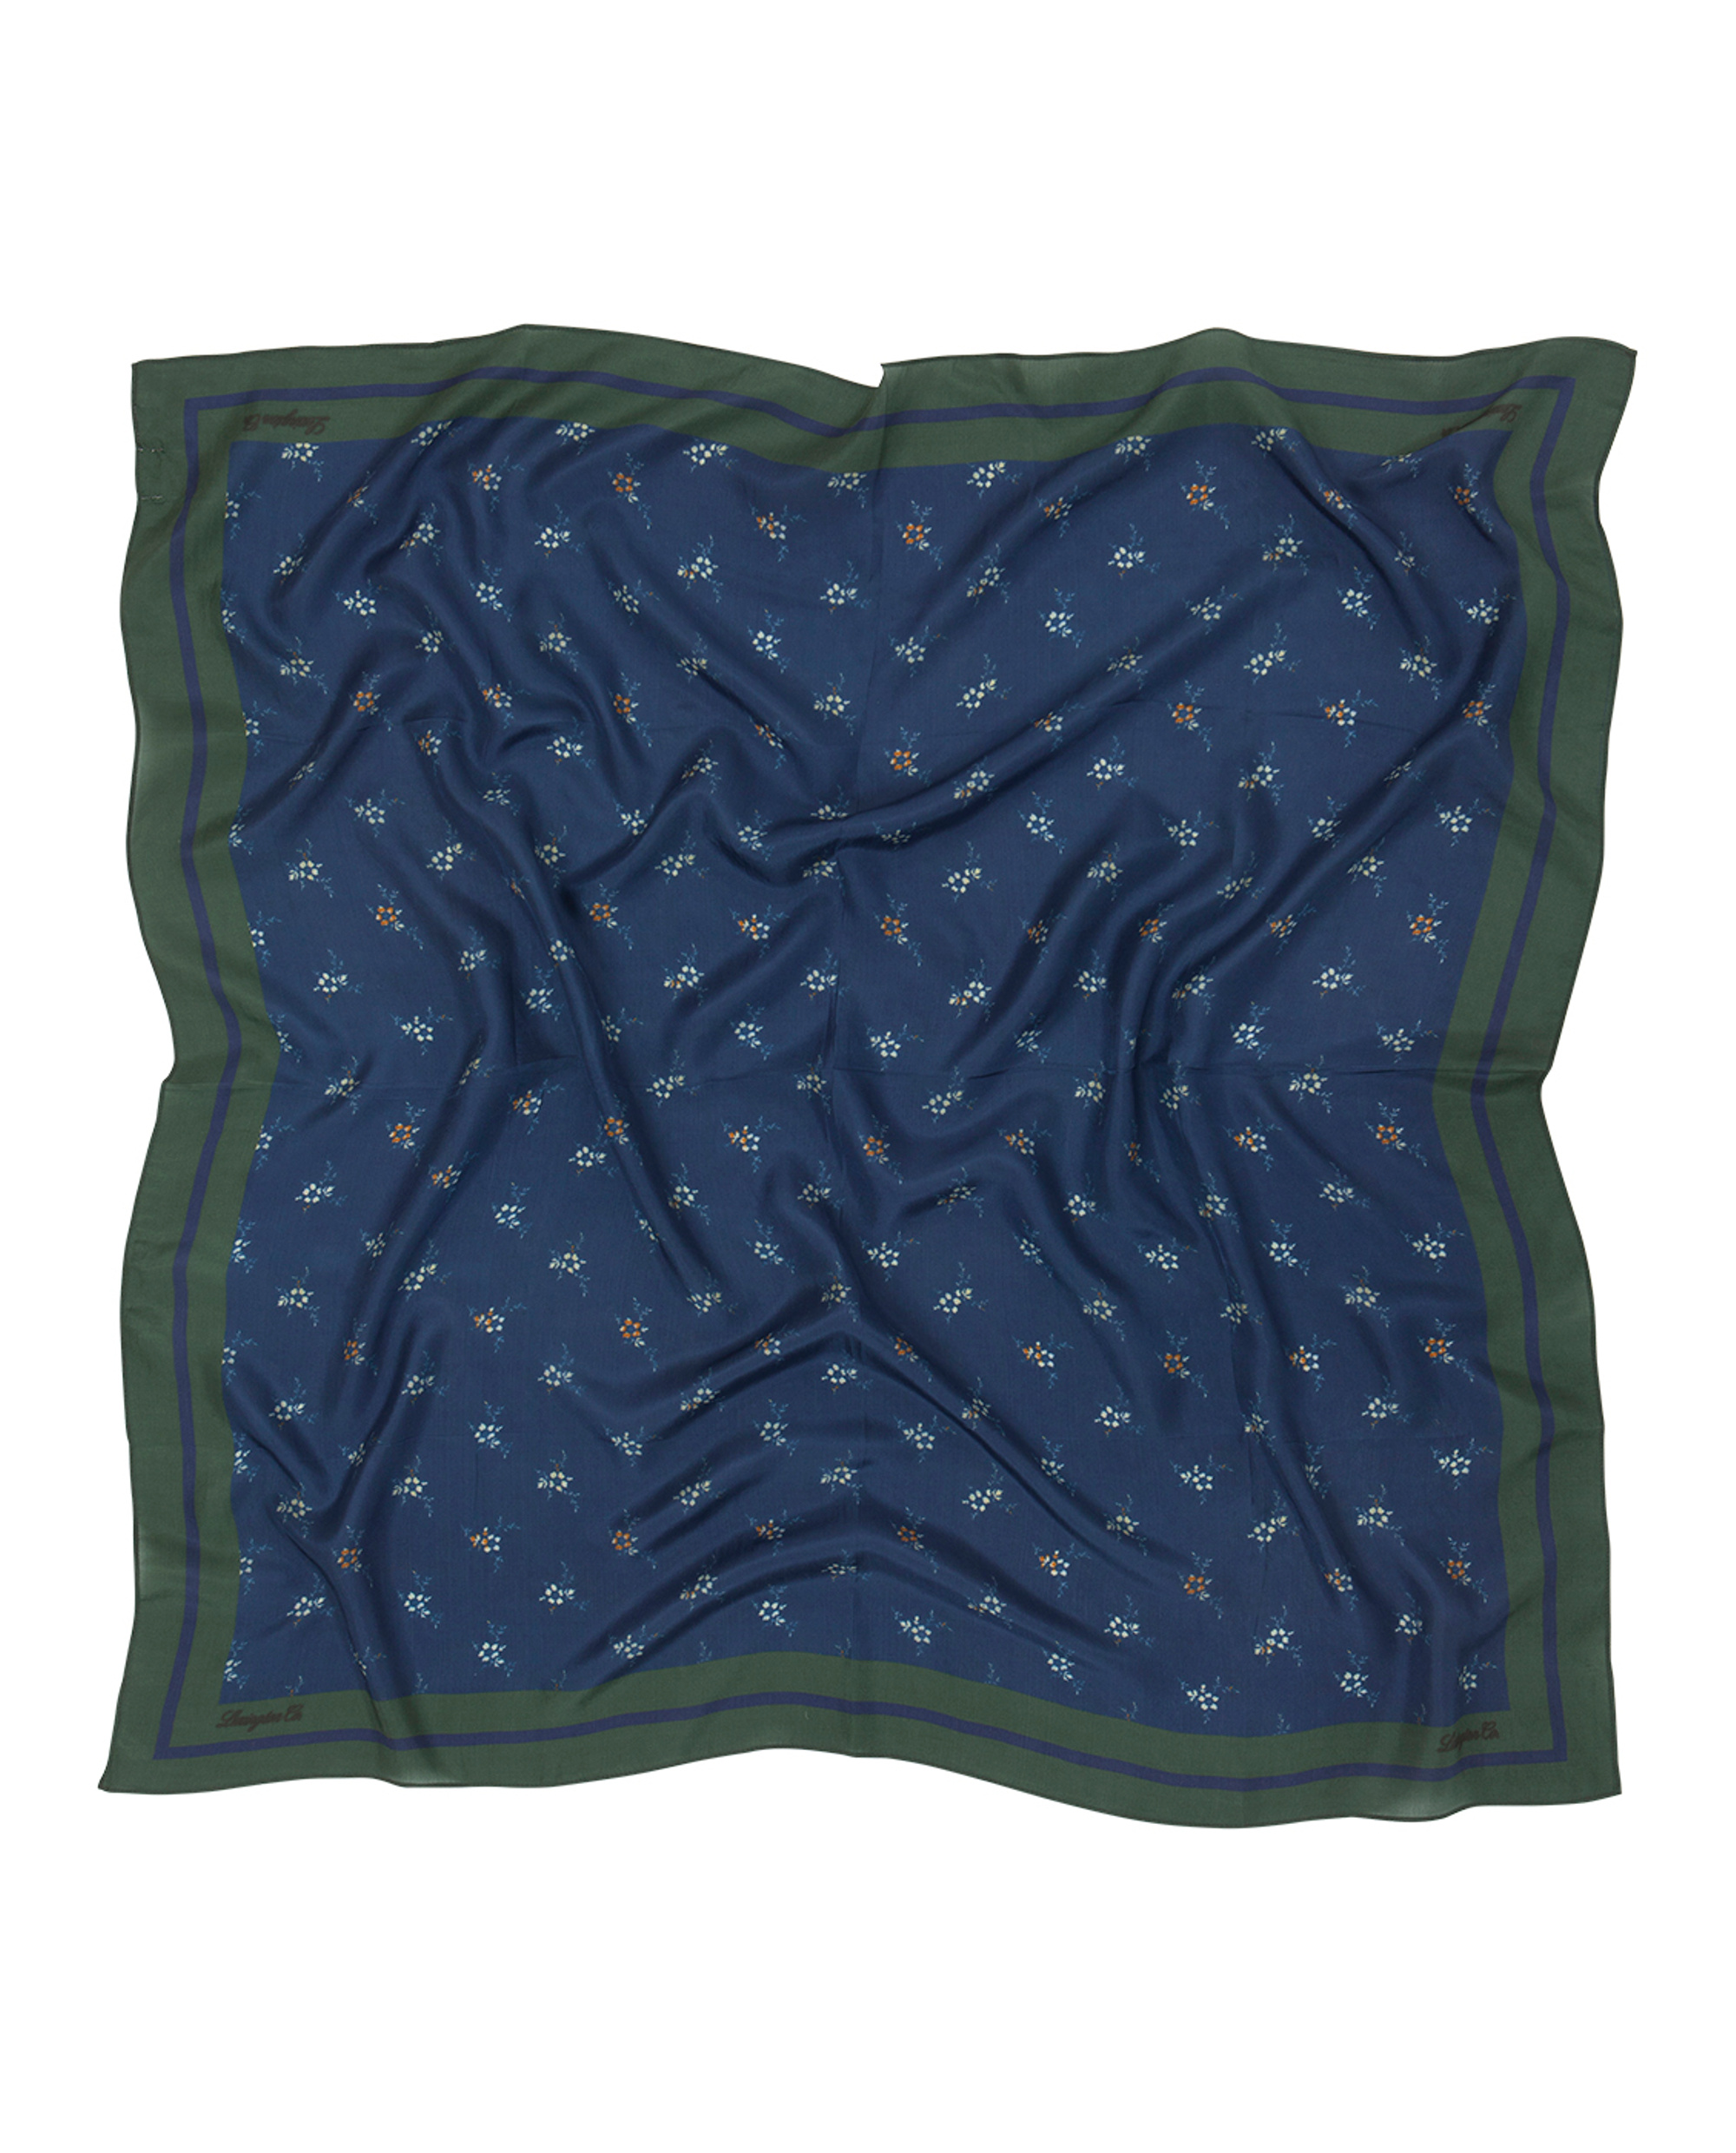 Gardiners Bay Flower Silk Scarf